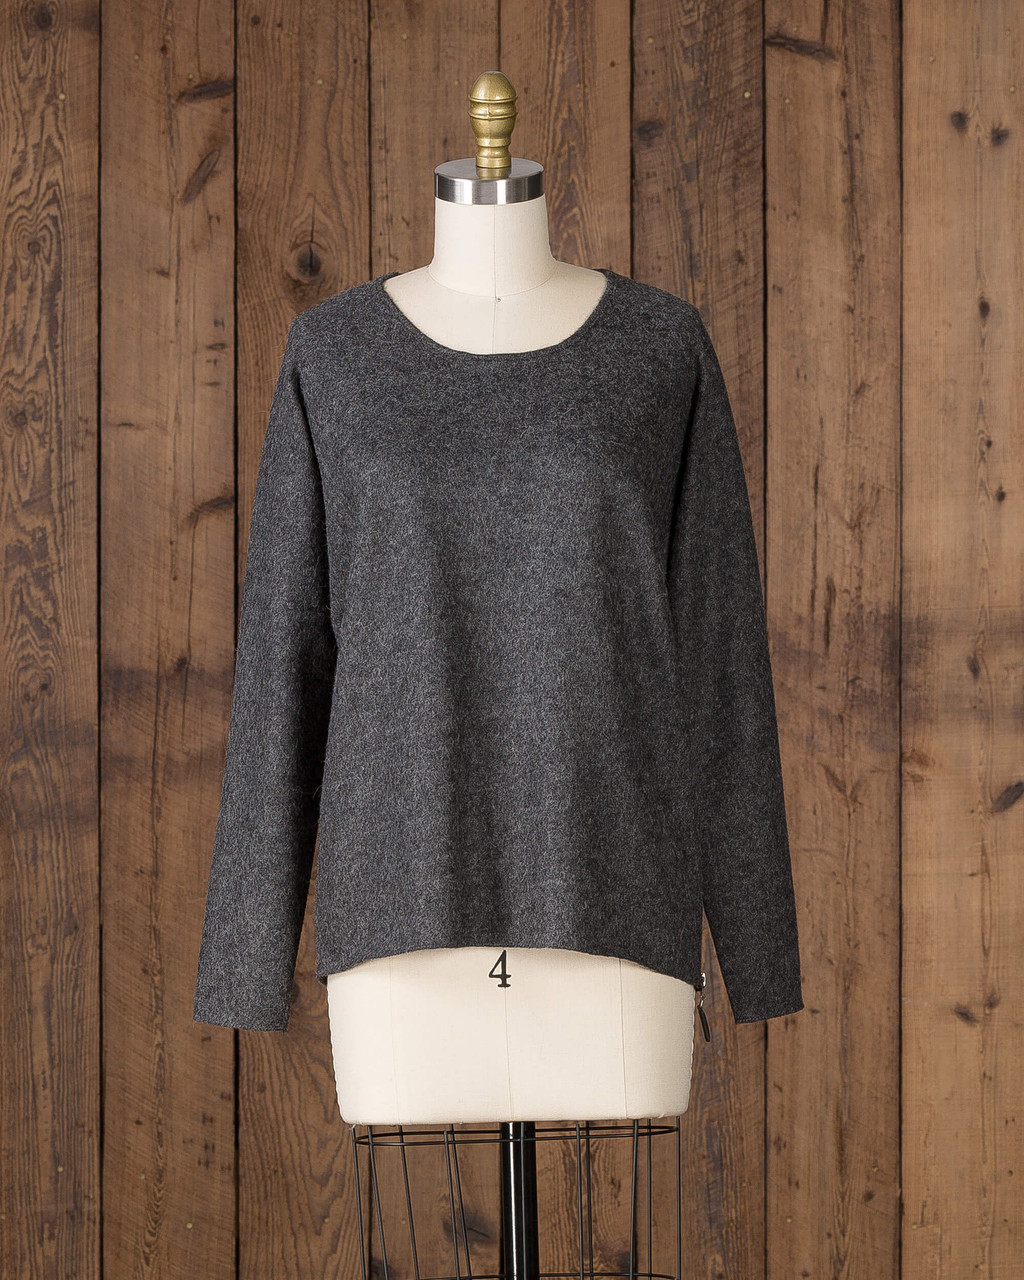 Alicia Adams Alpaca Verbier Side Zip, alpaca sweaters womens, alpaca clothing, baby alpaca sweater, alpaca vs cashmere, charcoal grey alpaca sweater